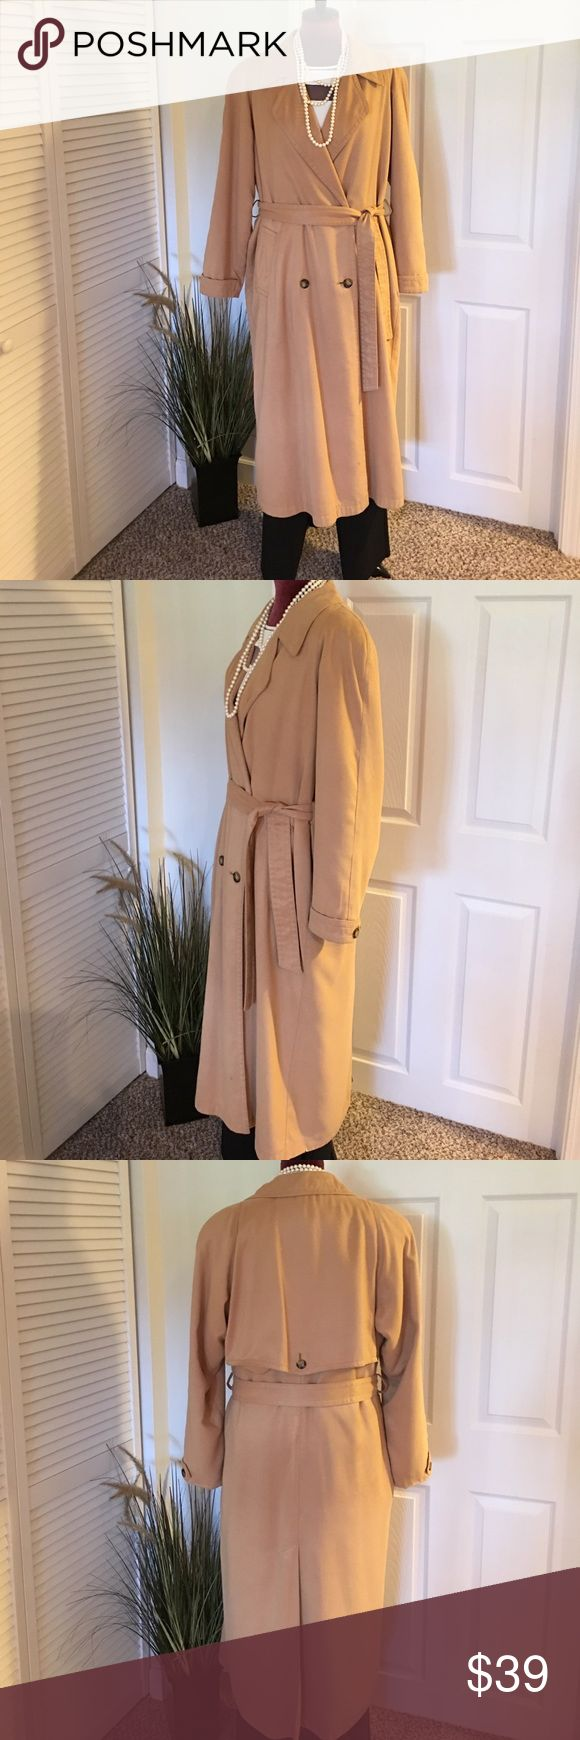 Roomy Fleet Street Ladies Full Length Dress Coat Fully Lined and Liner is Removable. Use Liner for Cold Weather Days. Front button closure with tie belt. Tag says Size 6, but will fit larger gals too. I'm a size 12 and it fits great. Very generous sizing. 2 front pockets. Good condition. A few spots from regular, gentle use. See photos. Very flattering. Has always been dry cleaned and hung in a protective bag. Ask ??'s / Make an offer / Bundle and Save 💵💵💵. Fleet Street Jackets & Coats…